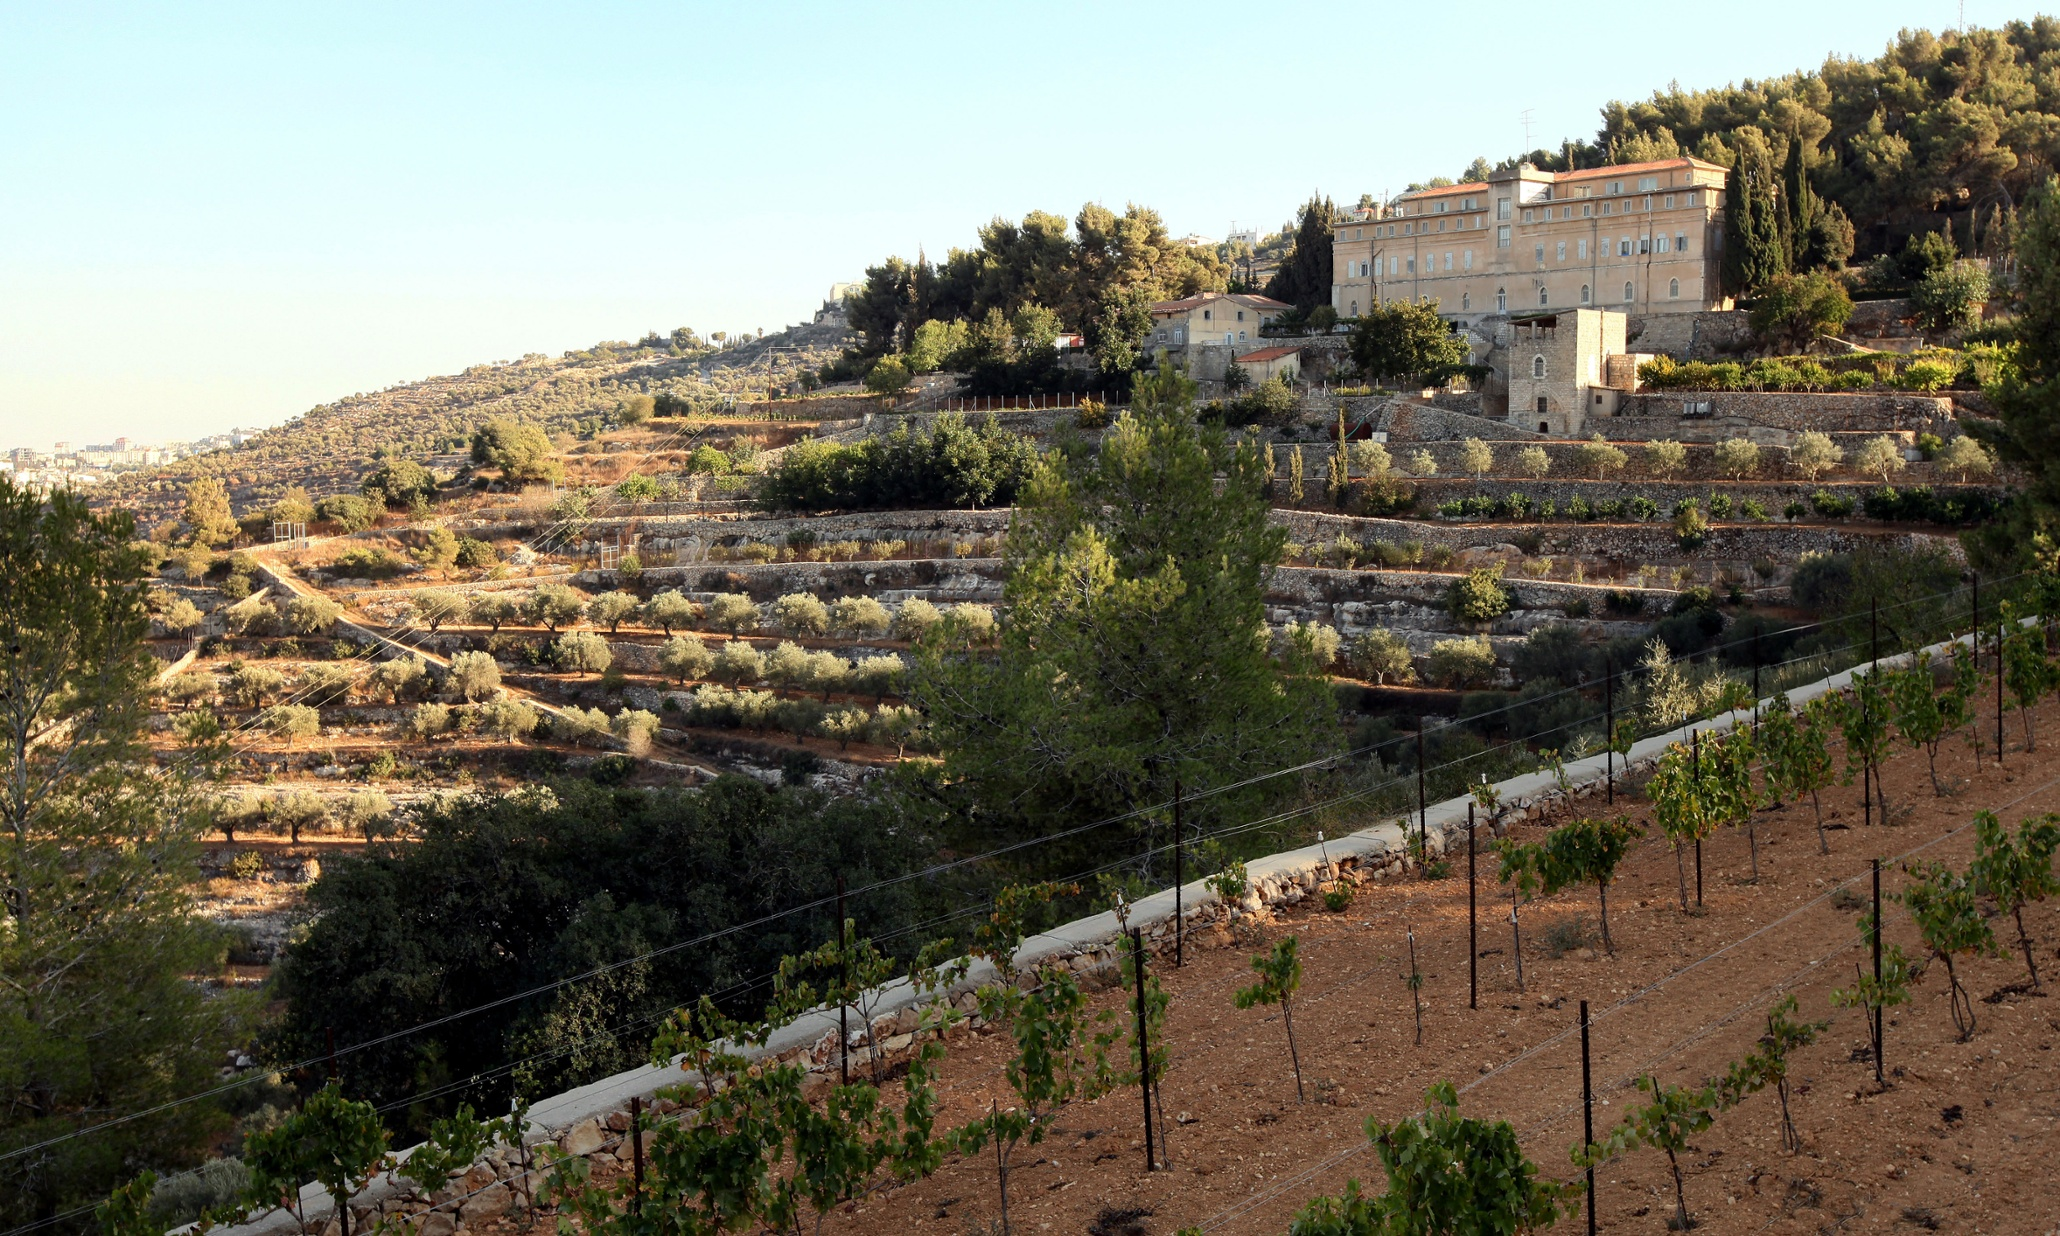 CE5PNT Vineyard of the Cremisan Winery operated and managed by the Salesian Don Bosco Congregation. Beit Jala near Bethlehem, Palestine